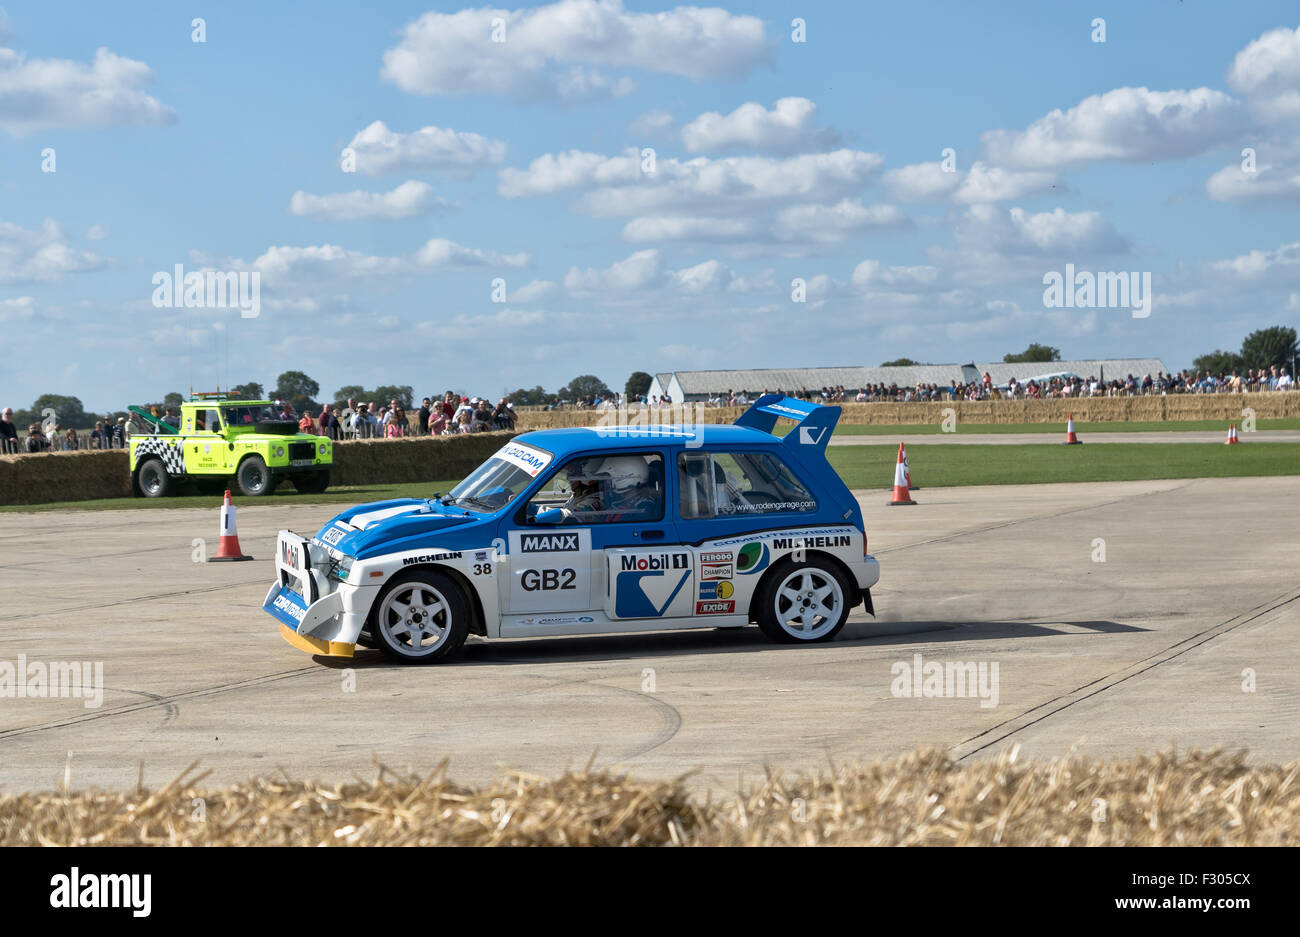 Vintage Rally Car Stock Photos & Vintage Rally Car Stock Images - Alamy